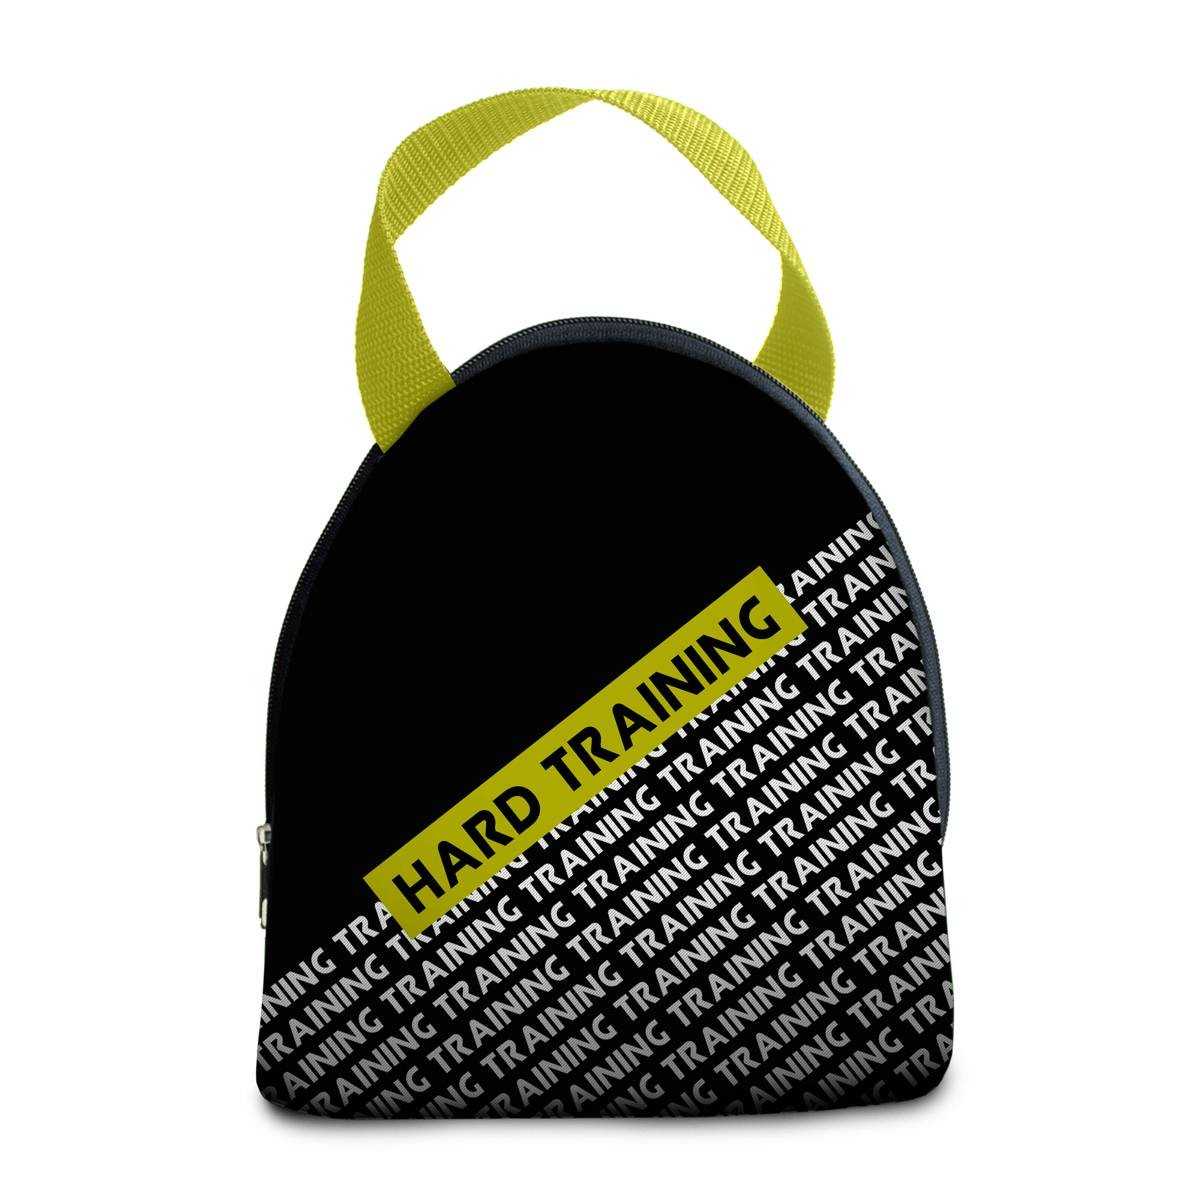 Marmiteira Case em Neoprene - Hard Training